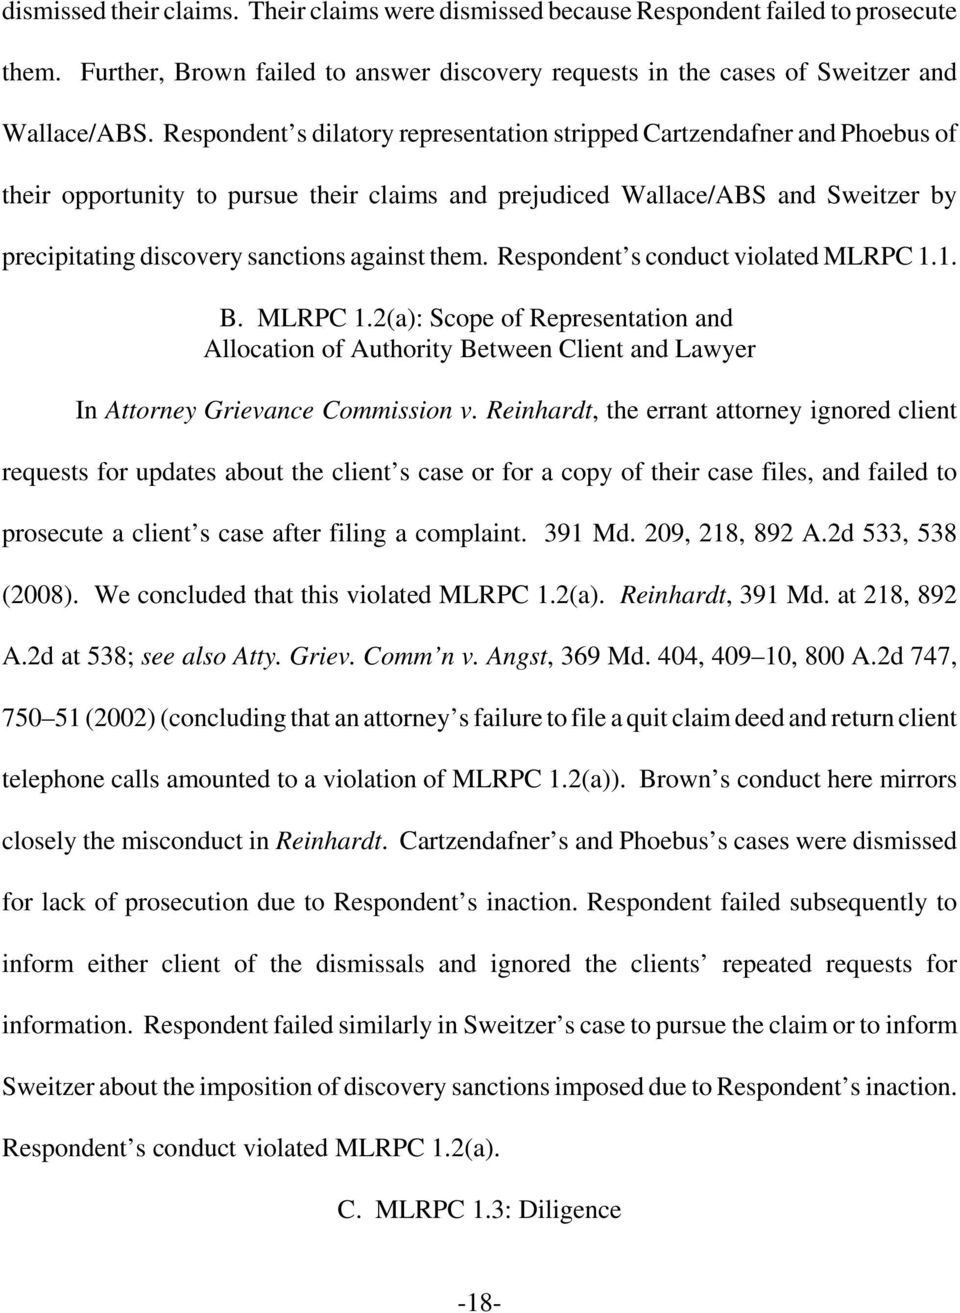 against them. Respondent s conduct violated MLRPC 1.1. B. MLRPC 1.2(a): Scope of Representation and Allocation of Authority Between Client and Lawyer In Attorney Grievance Commission v.